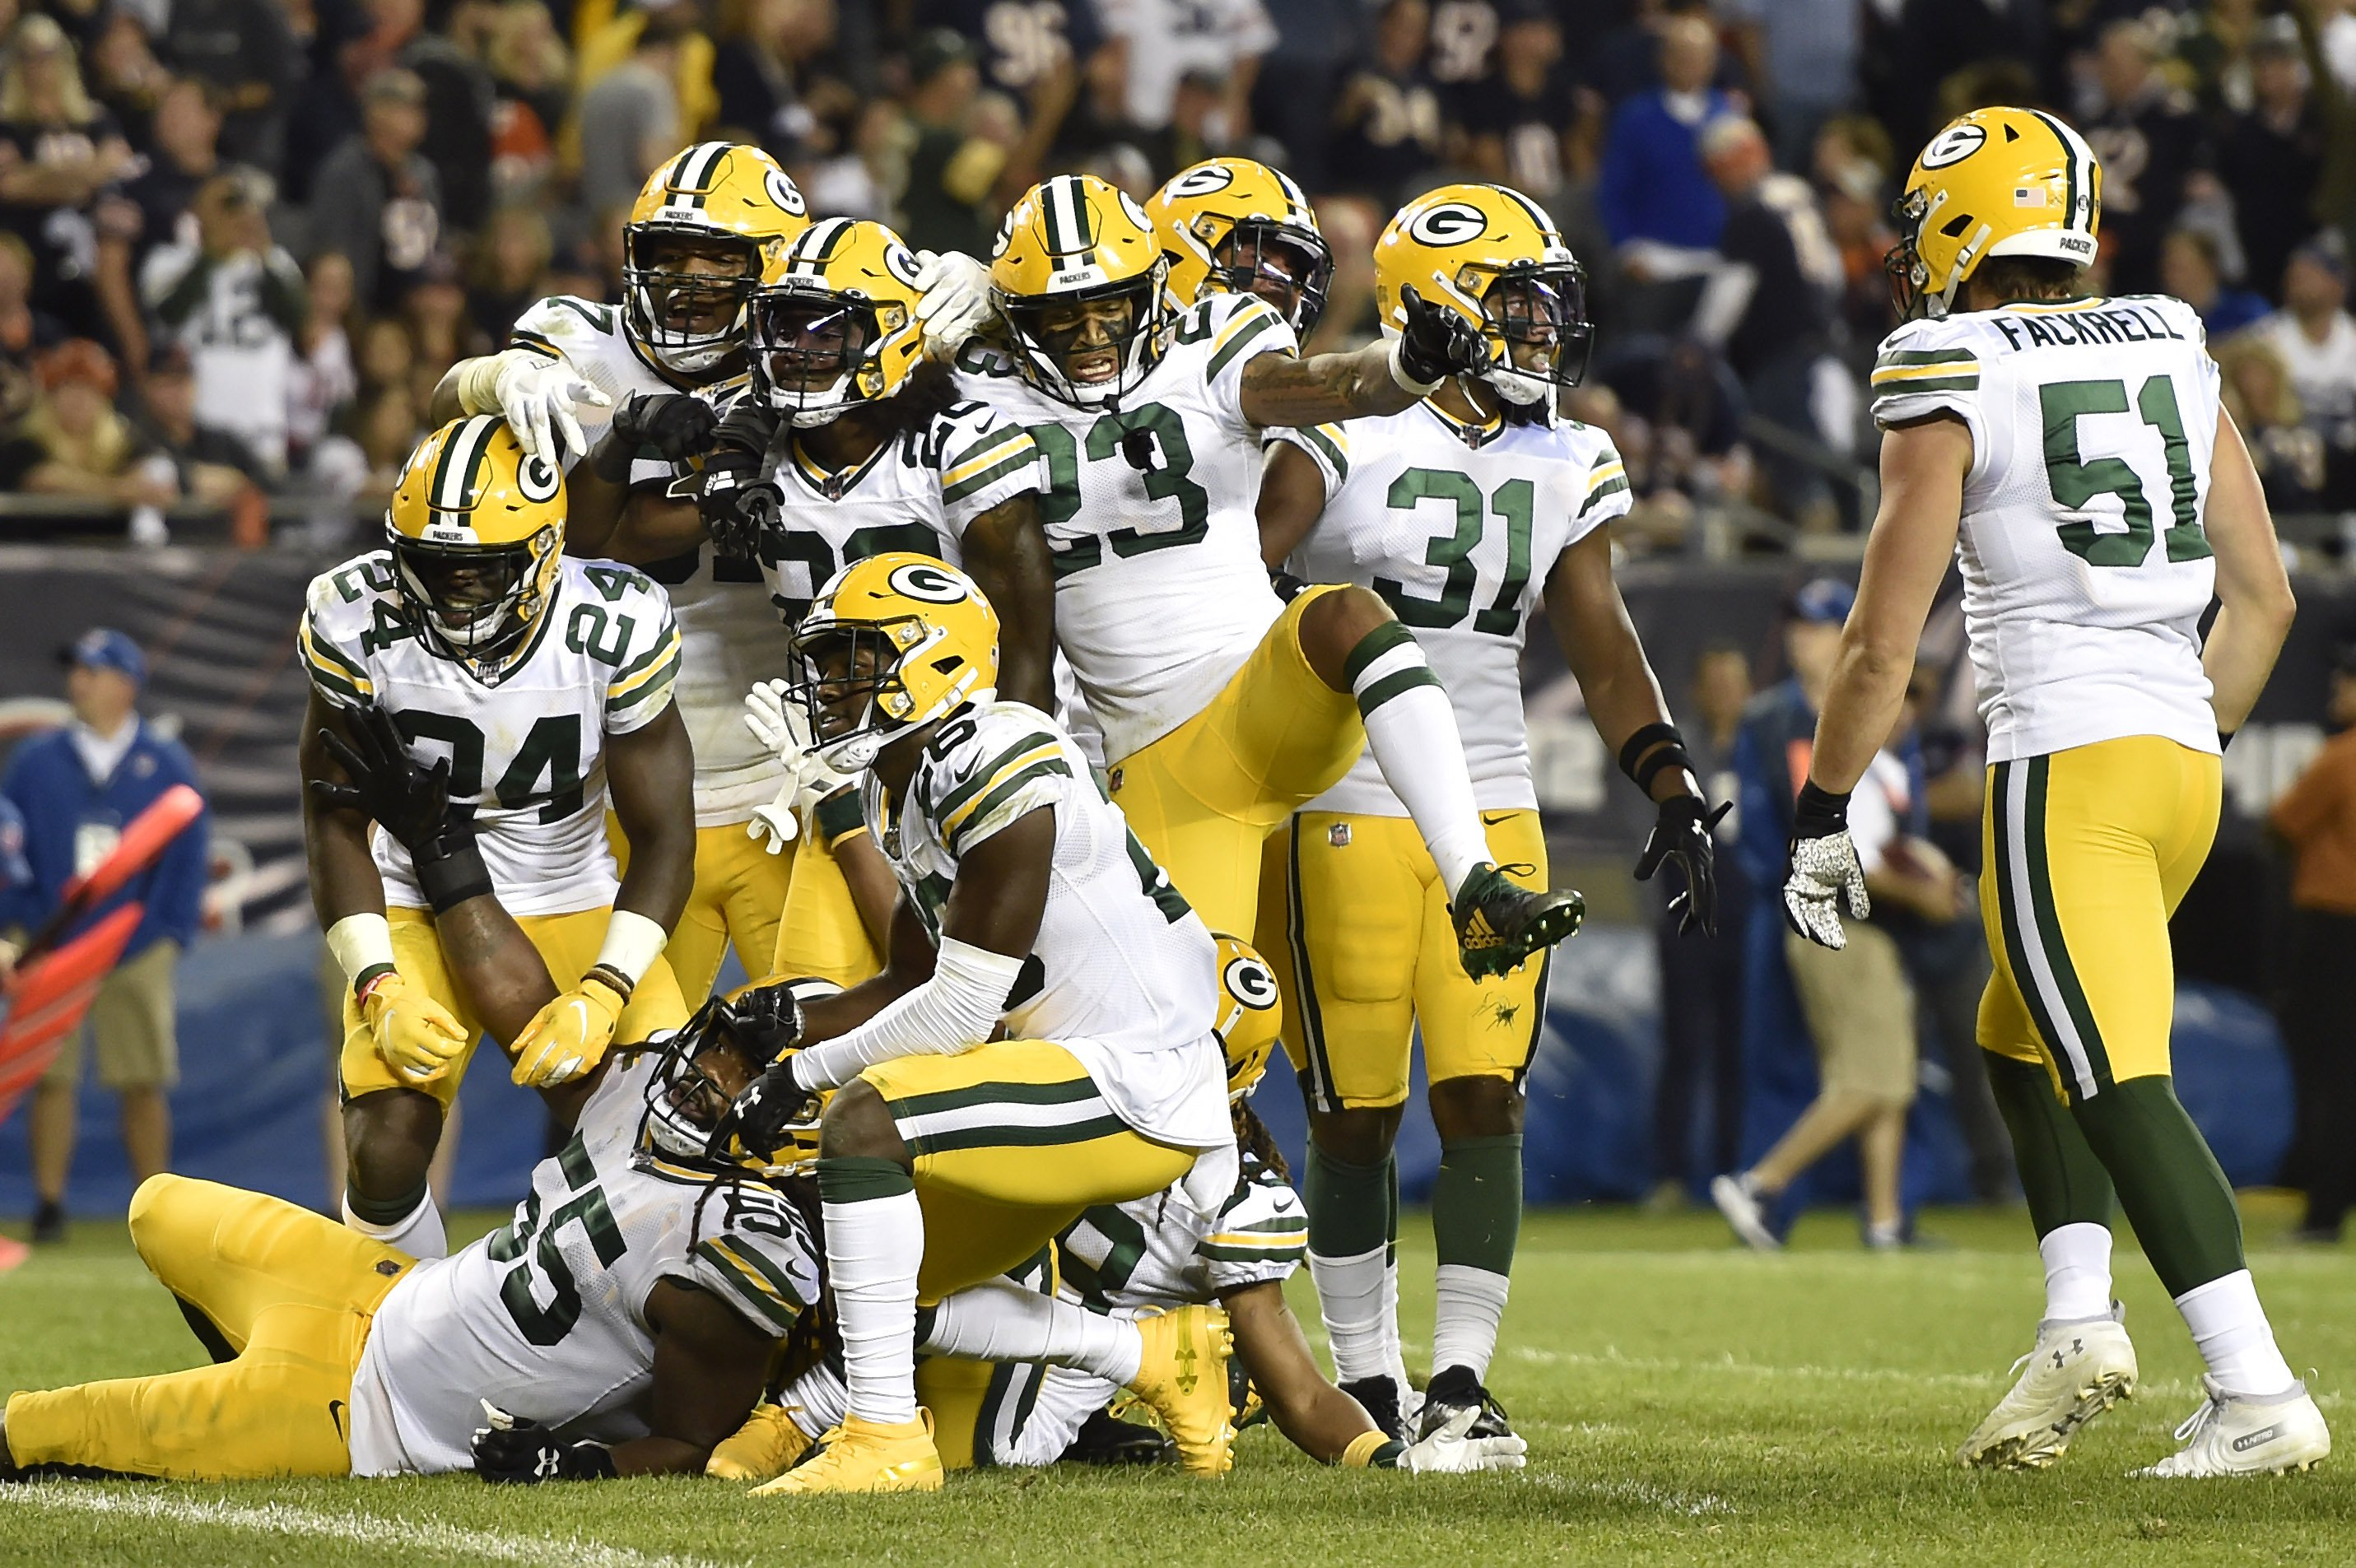 New-look Packers Defense is the Real Deal